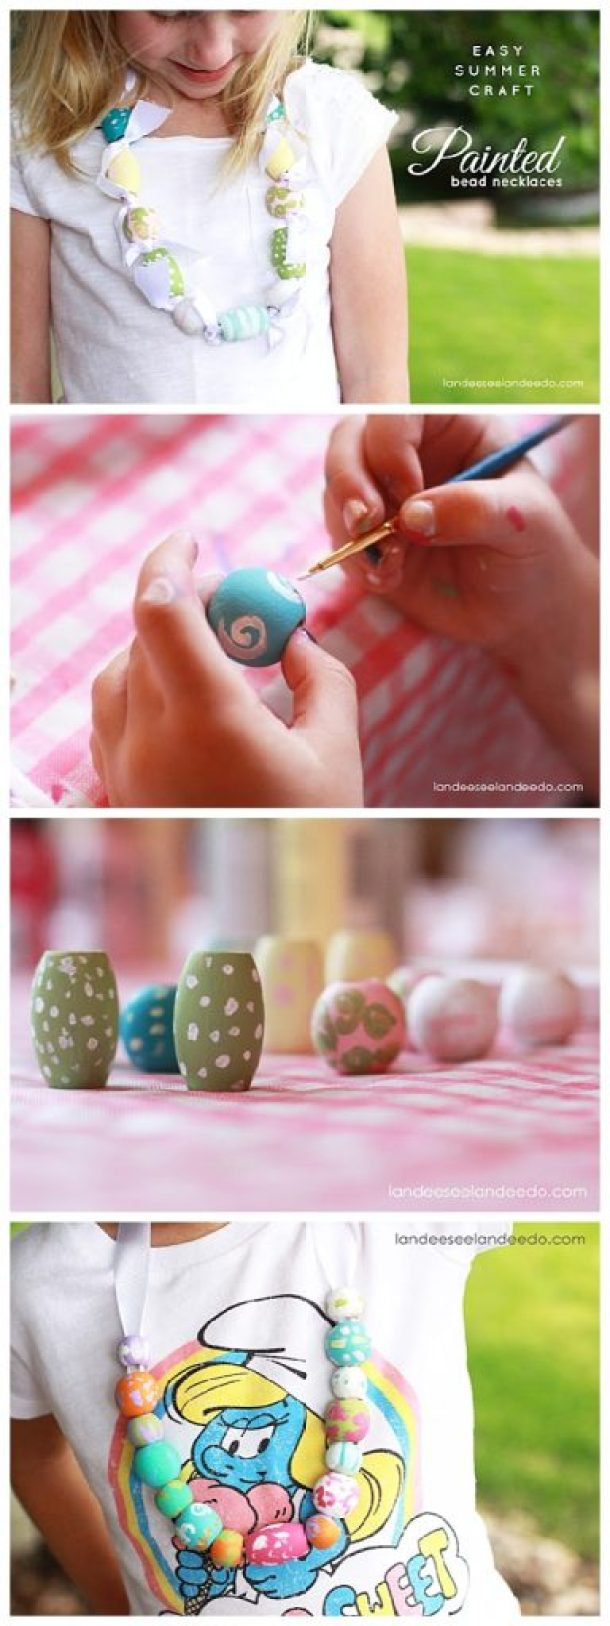 Easy and FUN Kids Craft Art Activity!  DIY Wooden Painted Beads Necklace Tutorial - perfect for summer fun! | landeelu.com